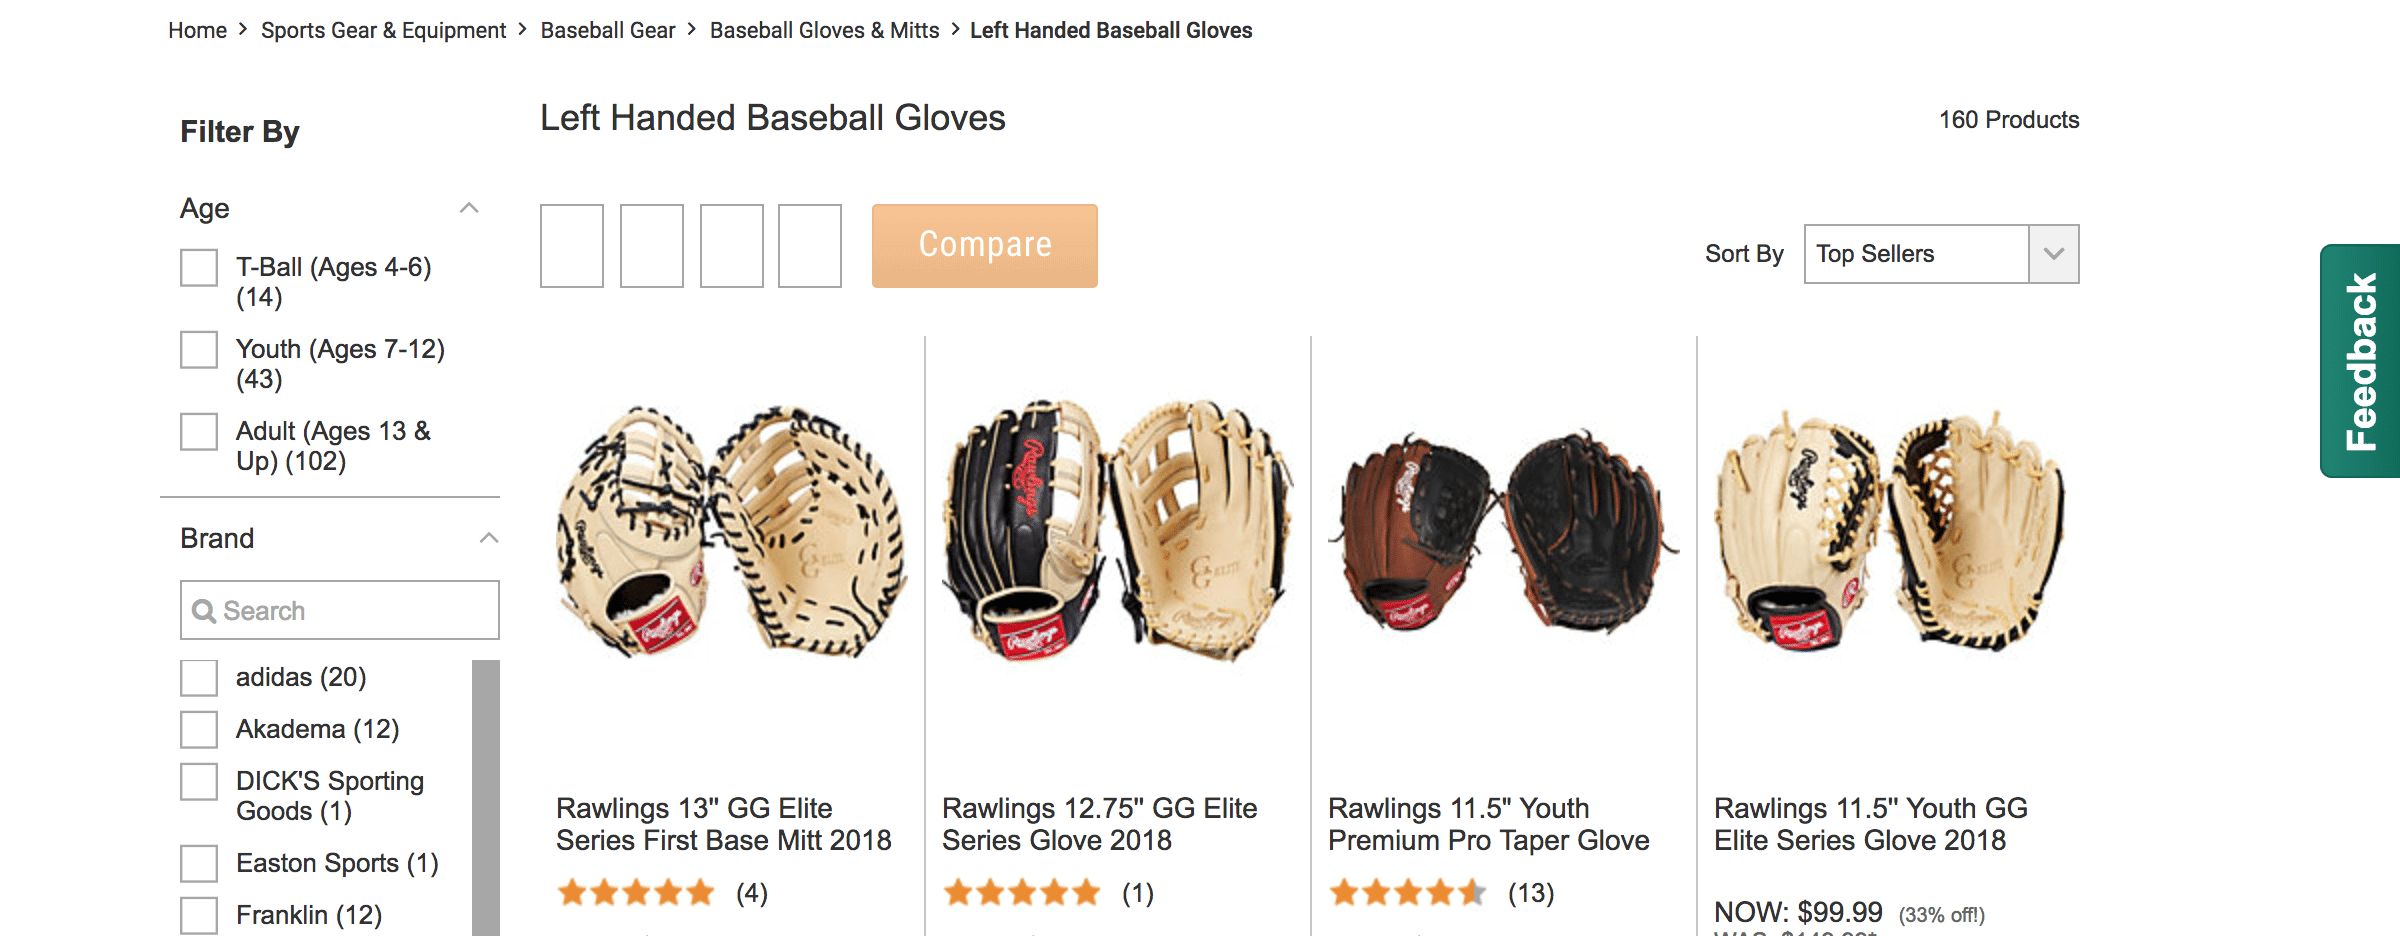 left handed baseball gloves